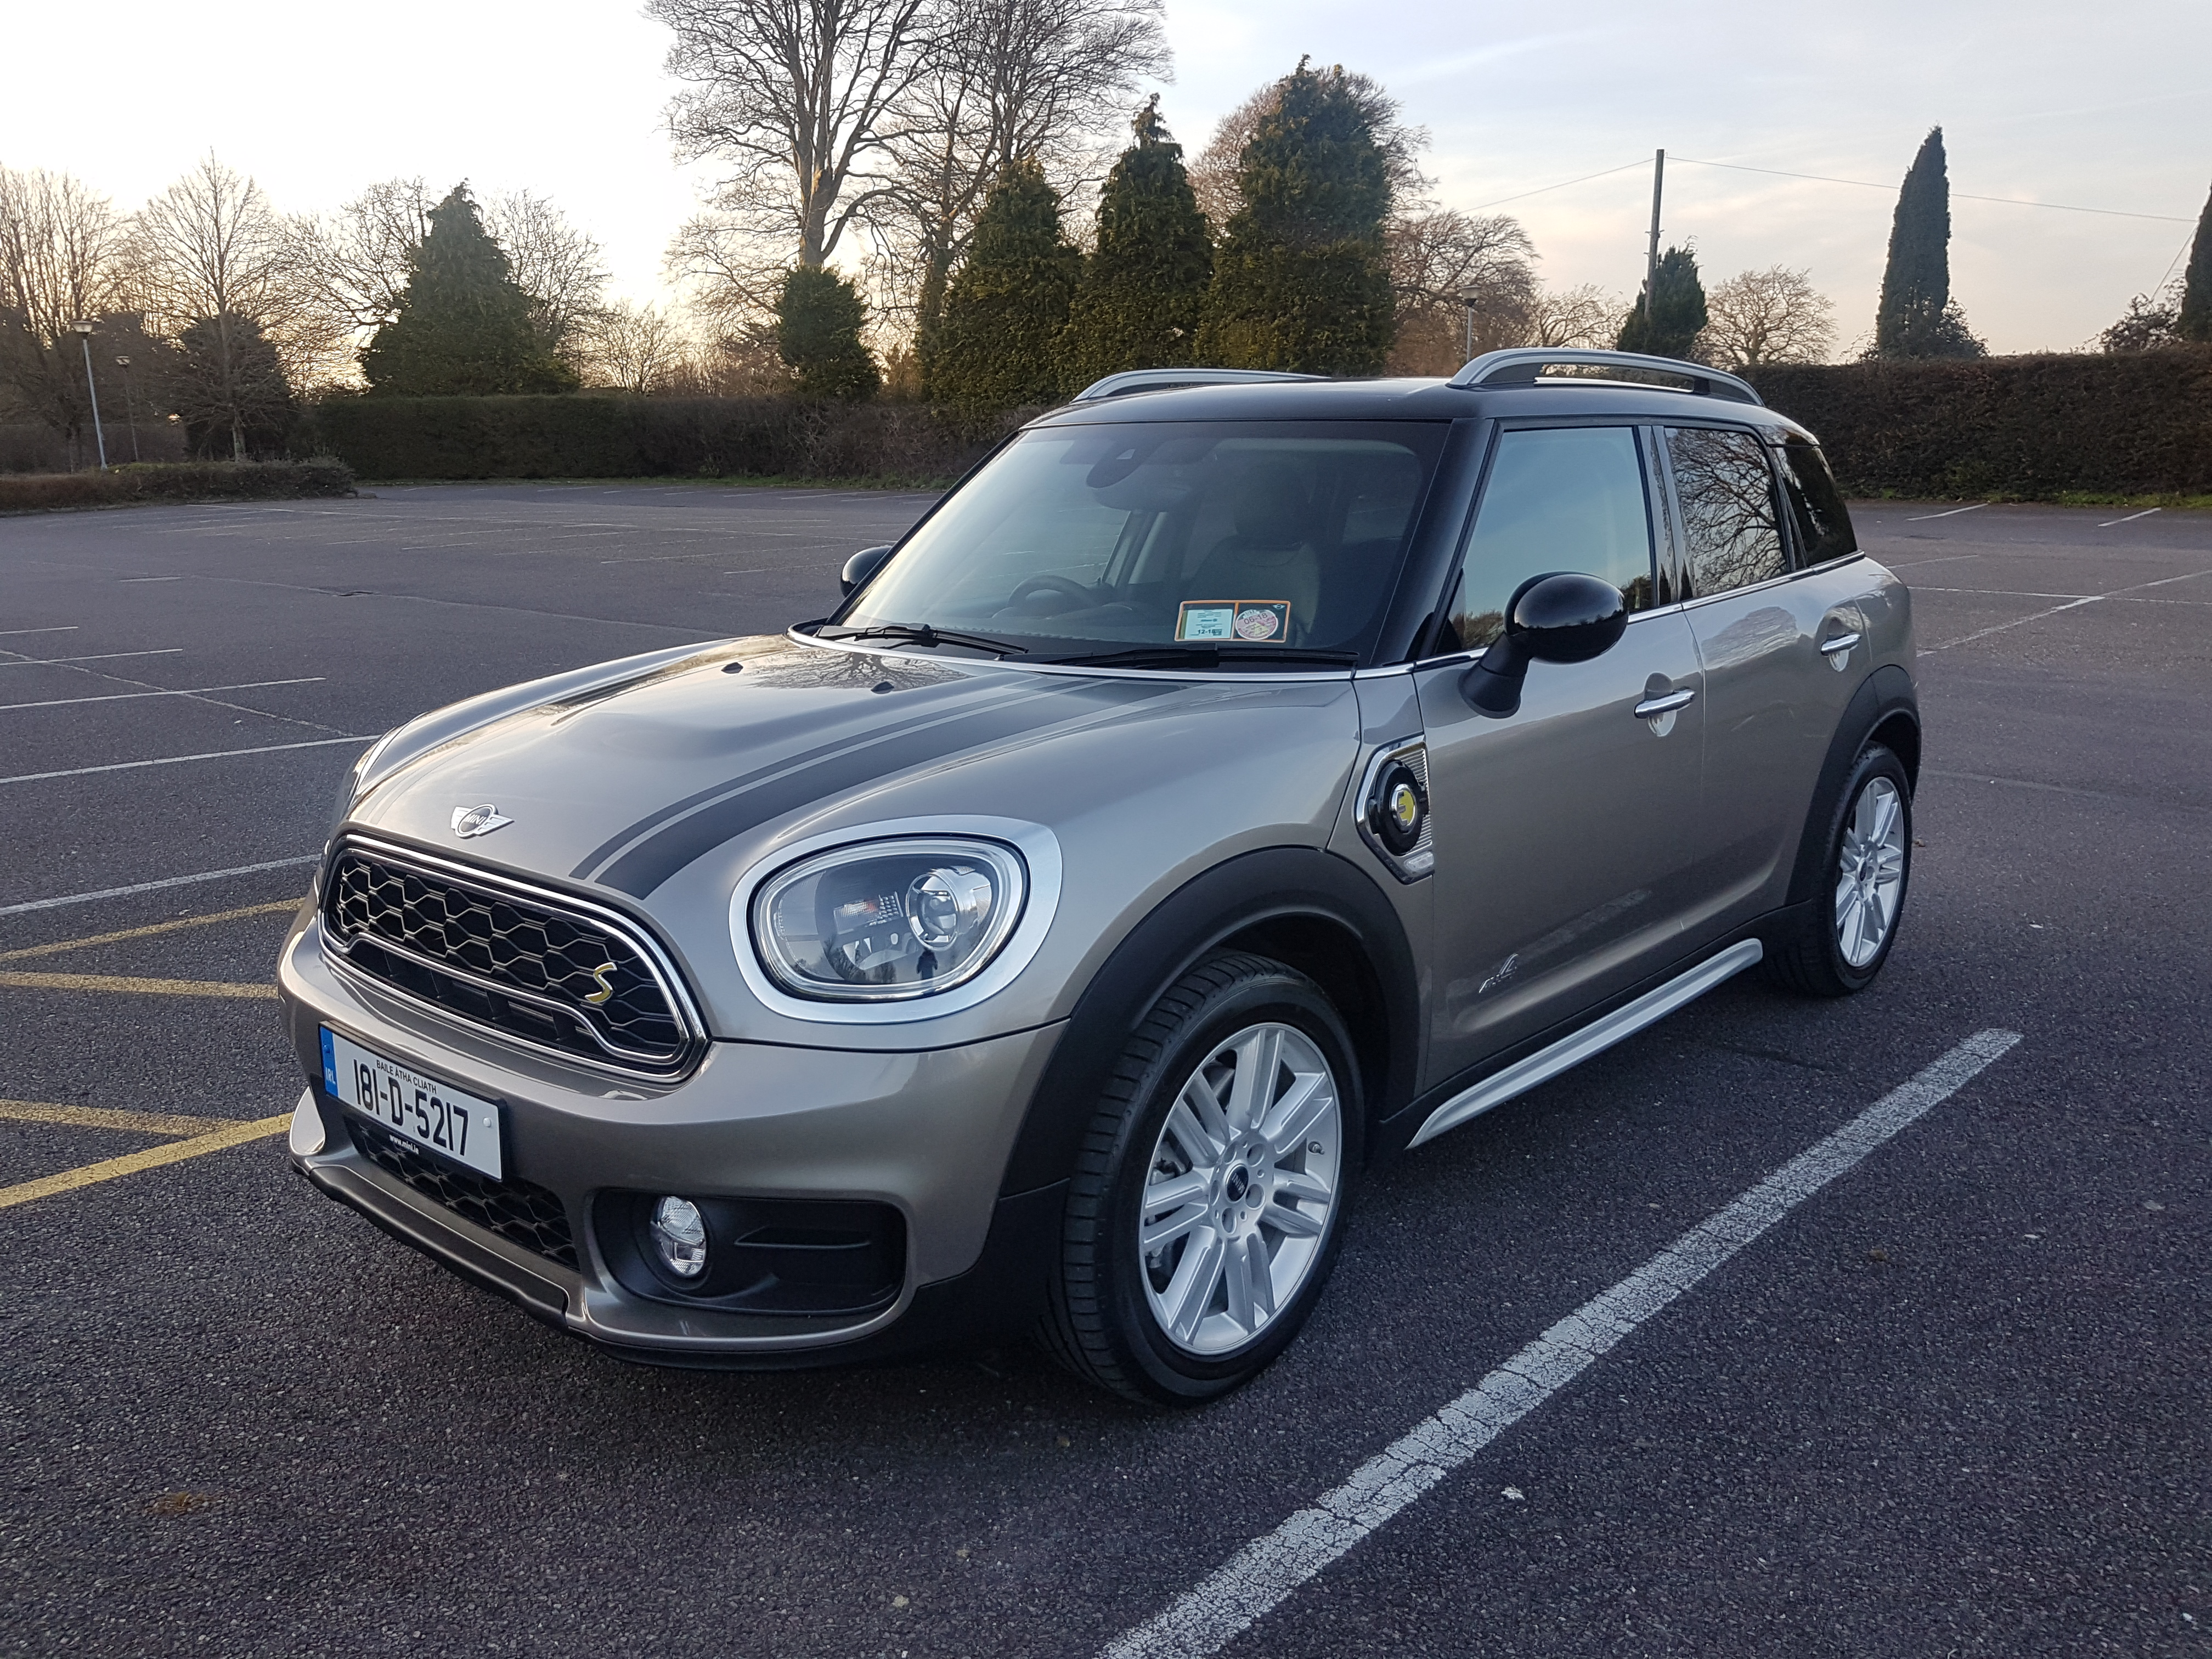 marketing trunk mini introducing new the pin door cooper